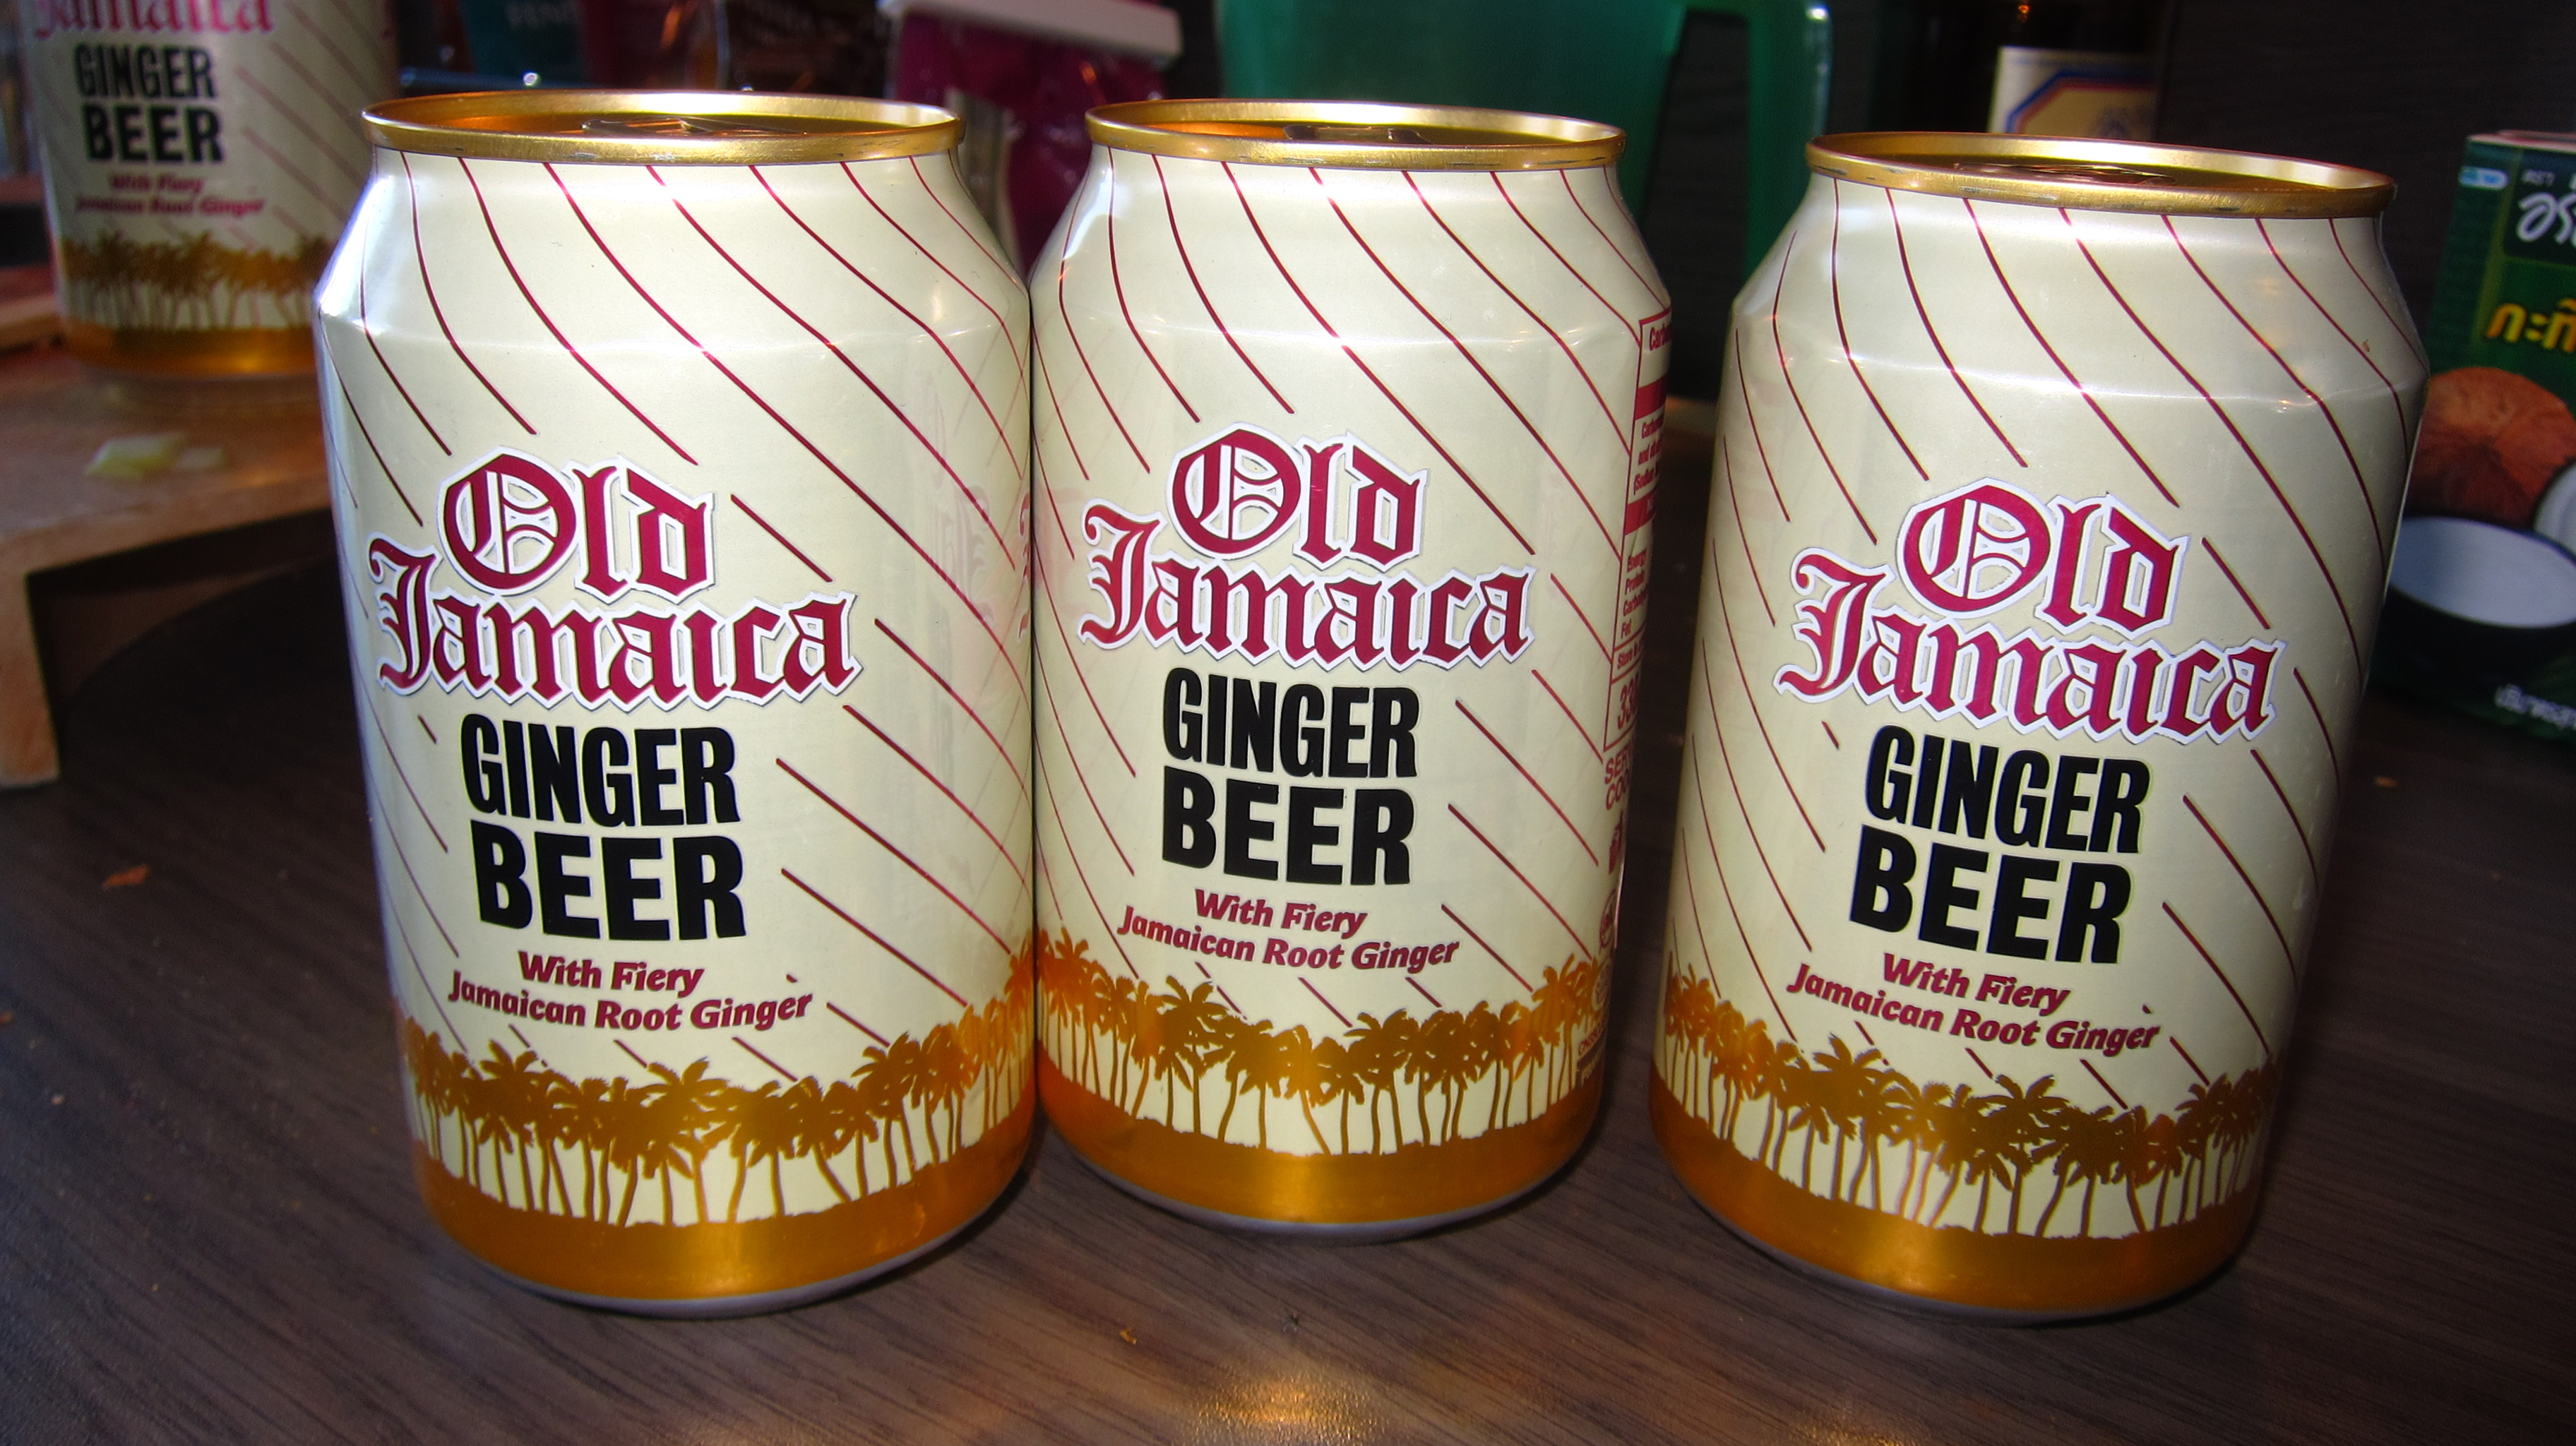 <!--:de-->Old Jamaica Ginger Beer<!--:--><!--:en-->Old Jamaica Ginger Beer<!--:-->